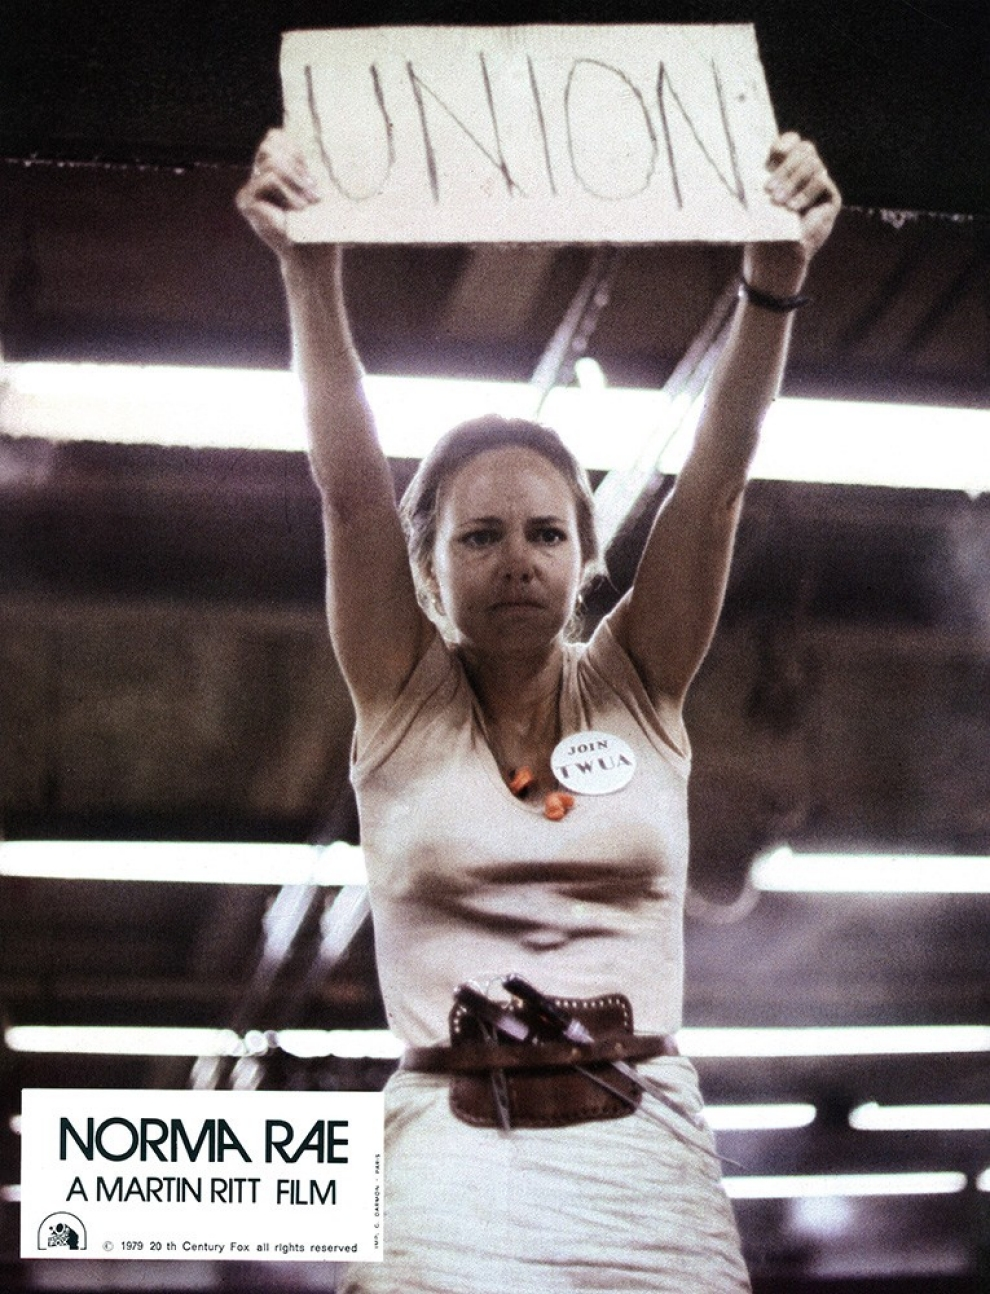 personal essay kafka and the nurses al jazeera america norma rae played by sally field 1979